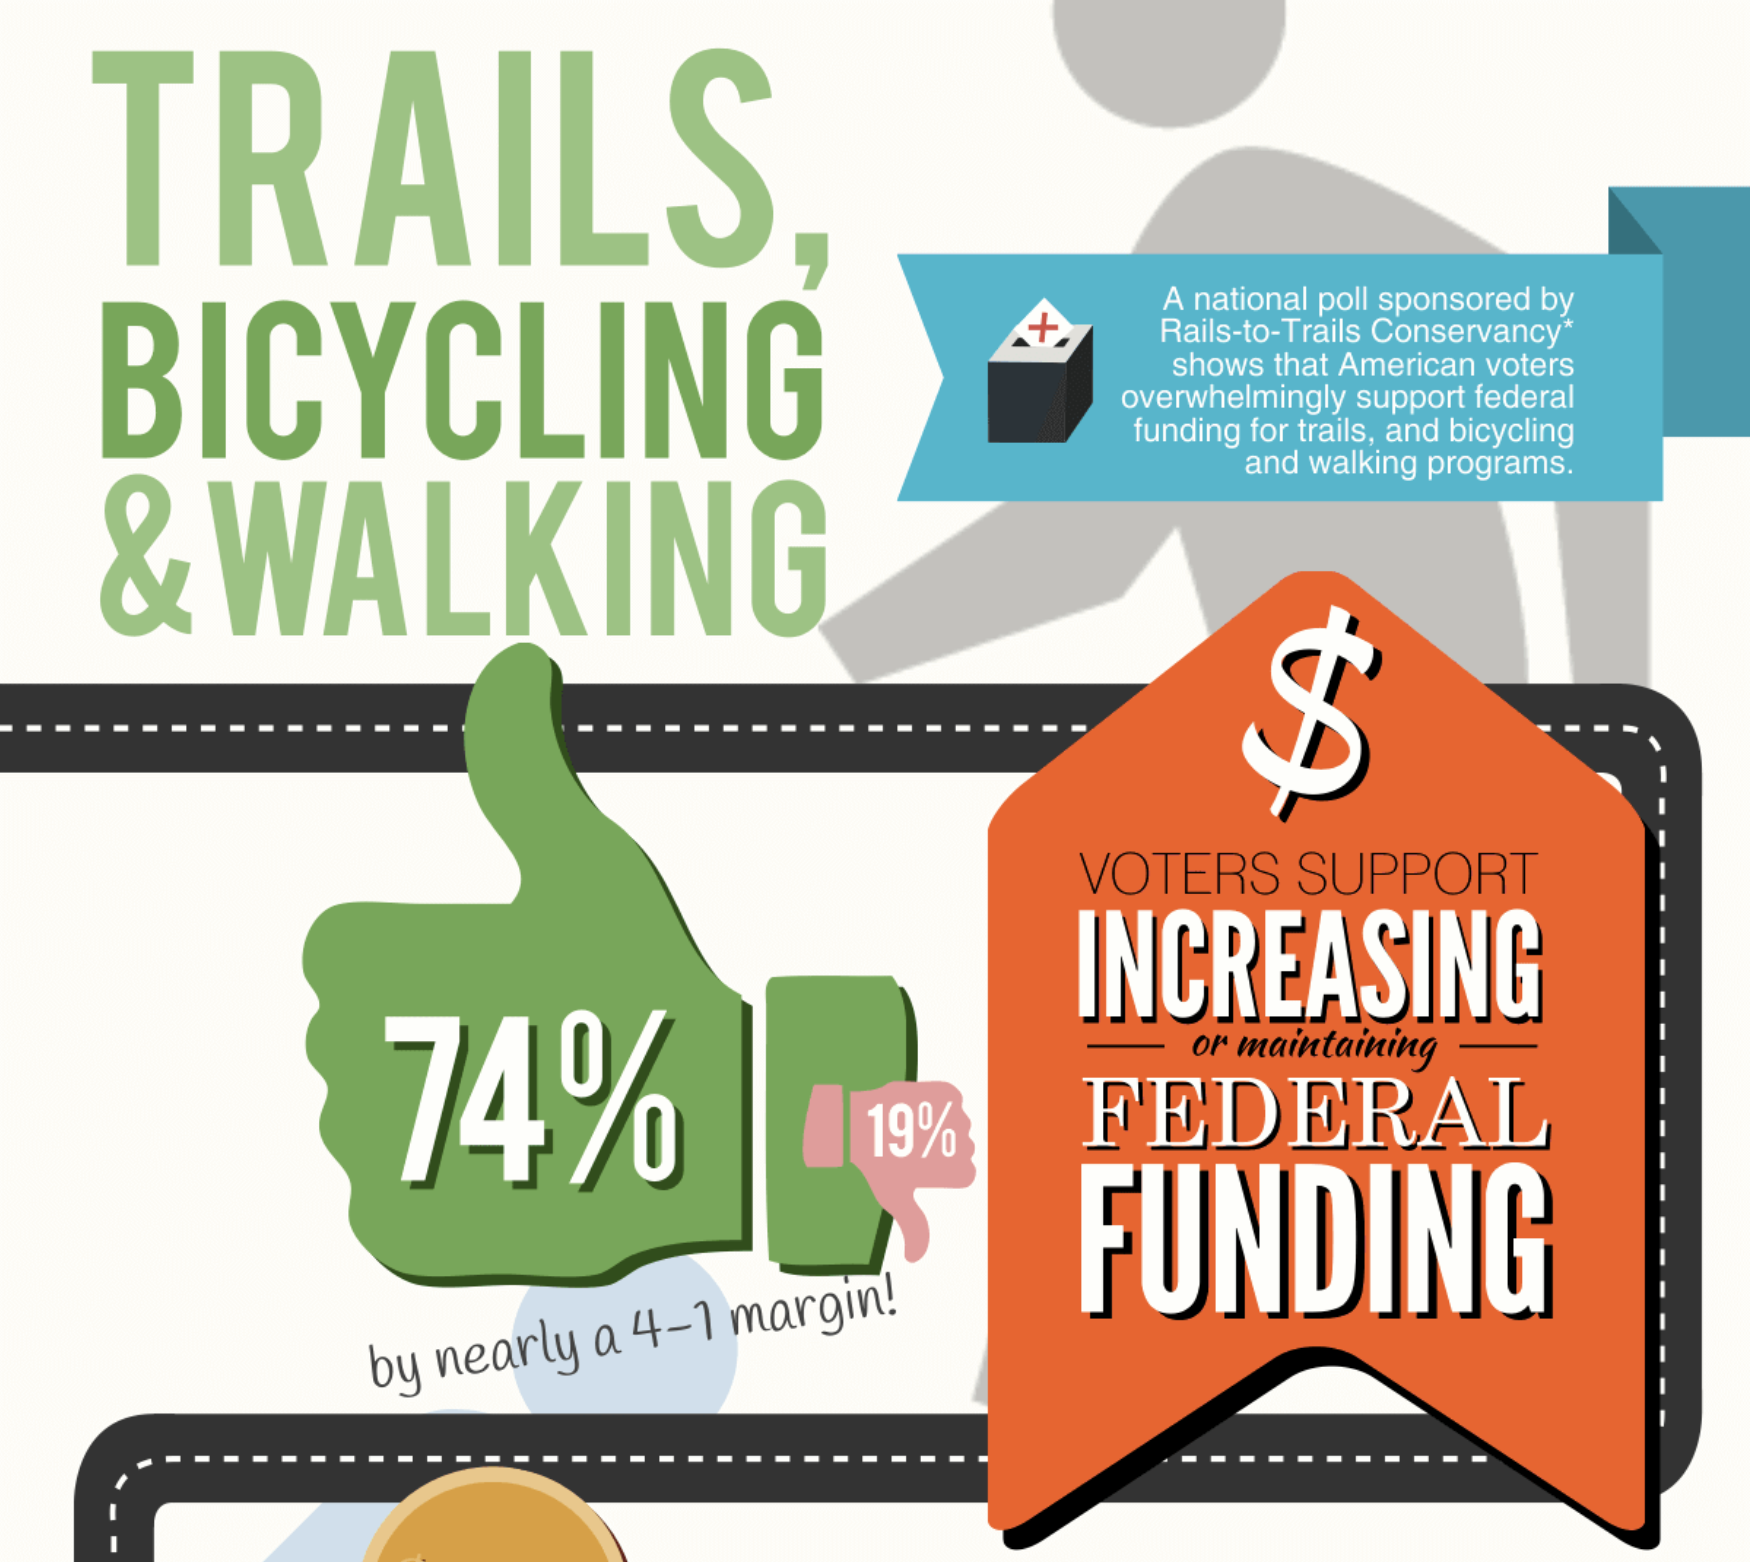 Snippet of a Trails, Bicycling and Walking Infographic | Courtesy Rails-to-Trails Conservancy